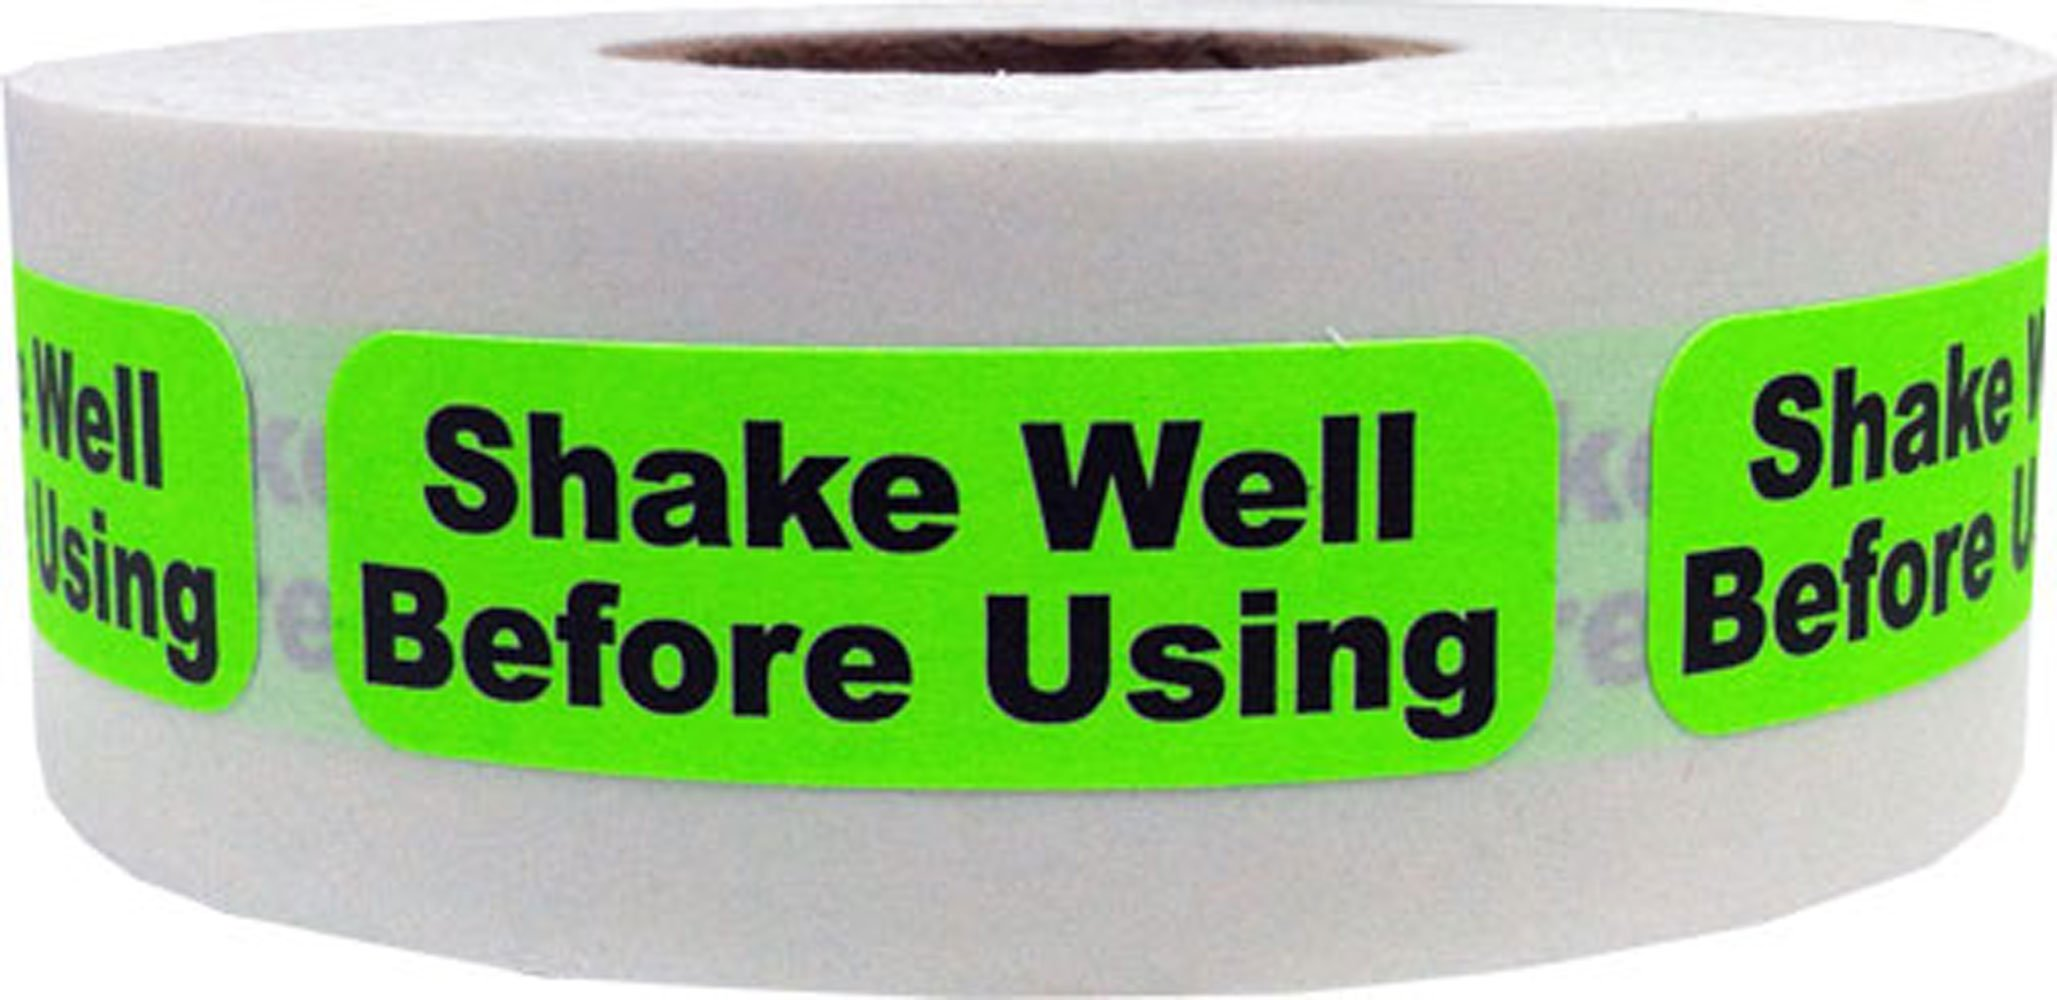 Fluorescent Green with Black Shake Well Before Using Stickers, 0.5 x 1.5 Inches in Size, 500 Labels on a Roll